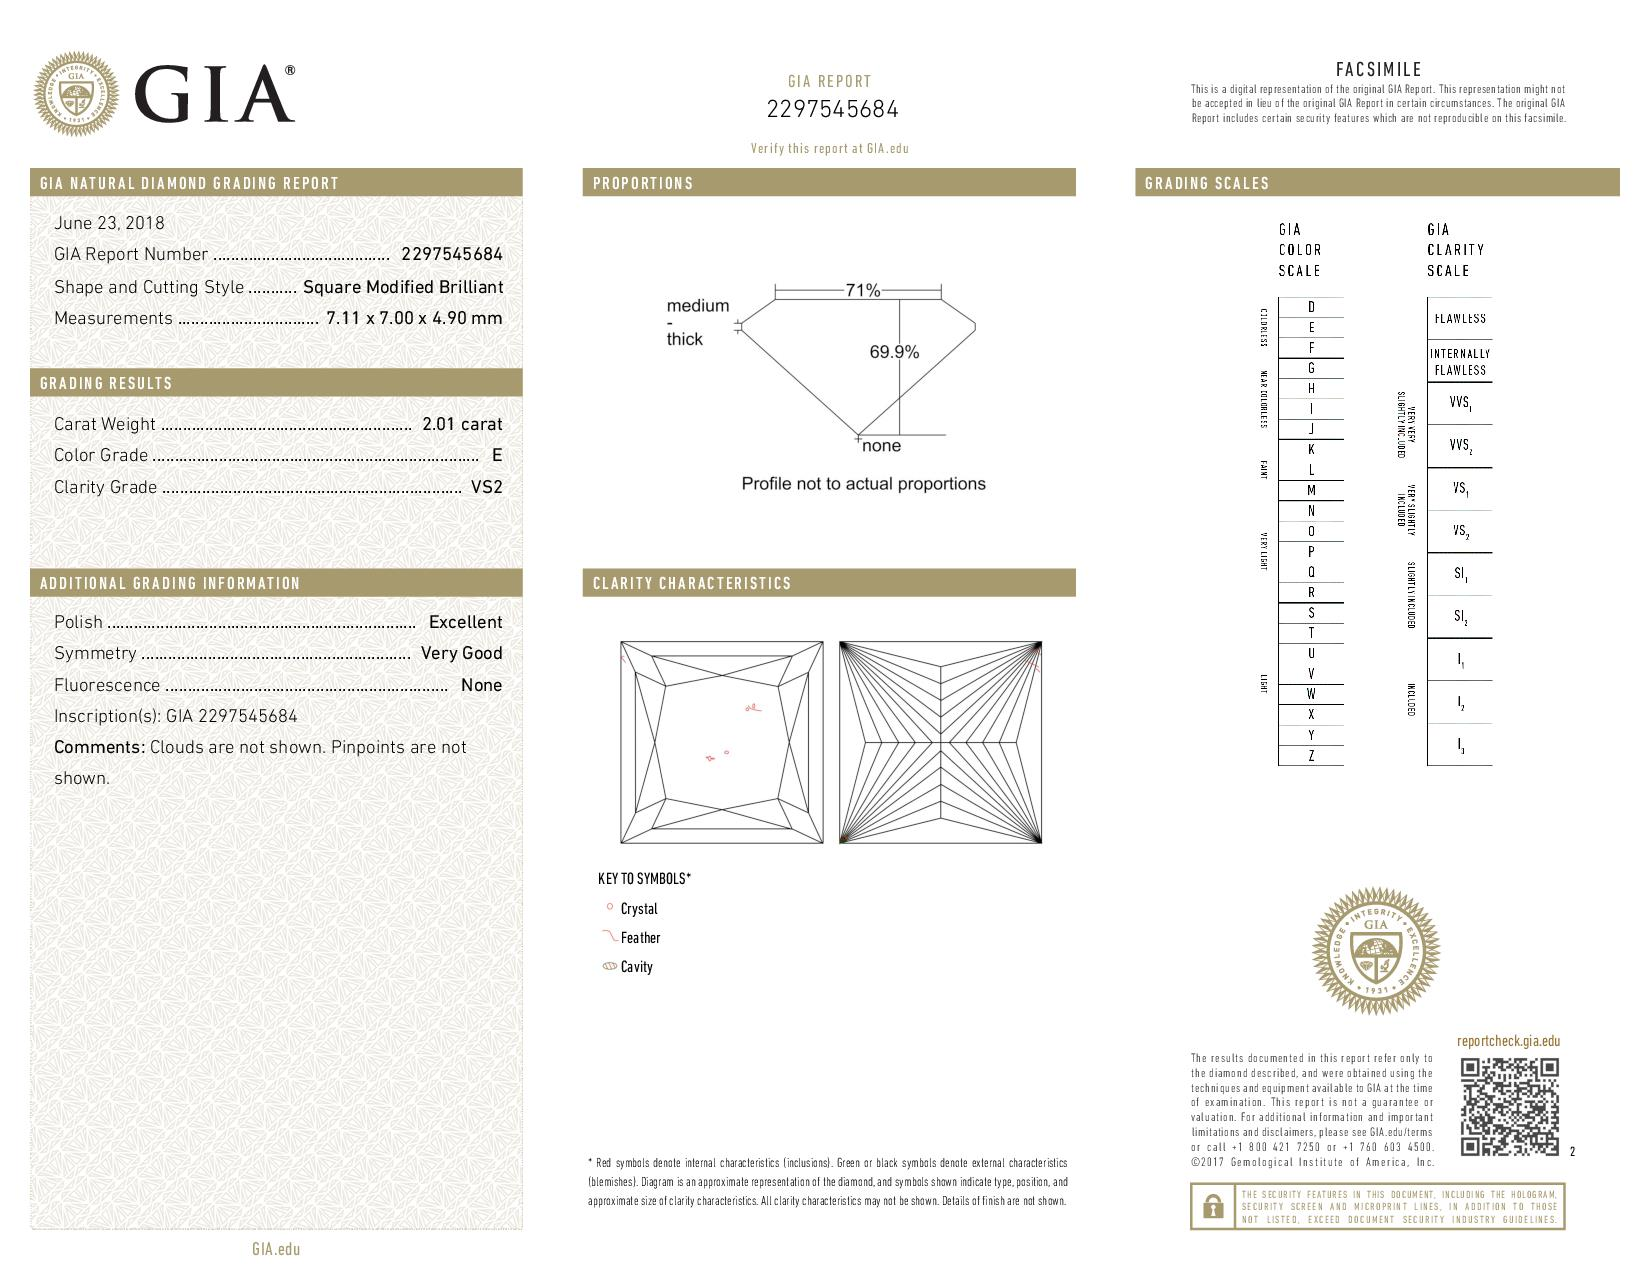 This is a 2.01 carat princess shape, E color, VS2 clarity natural diamond accompanied by a GIA grading report.